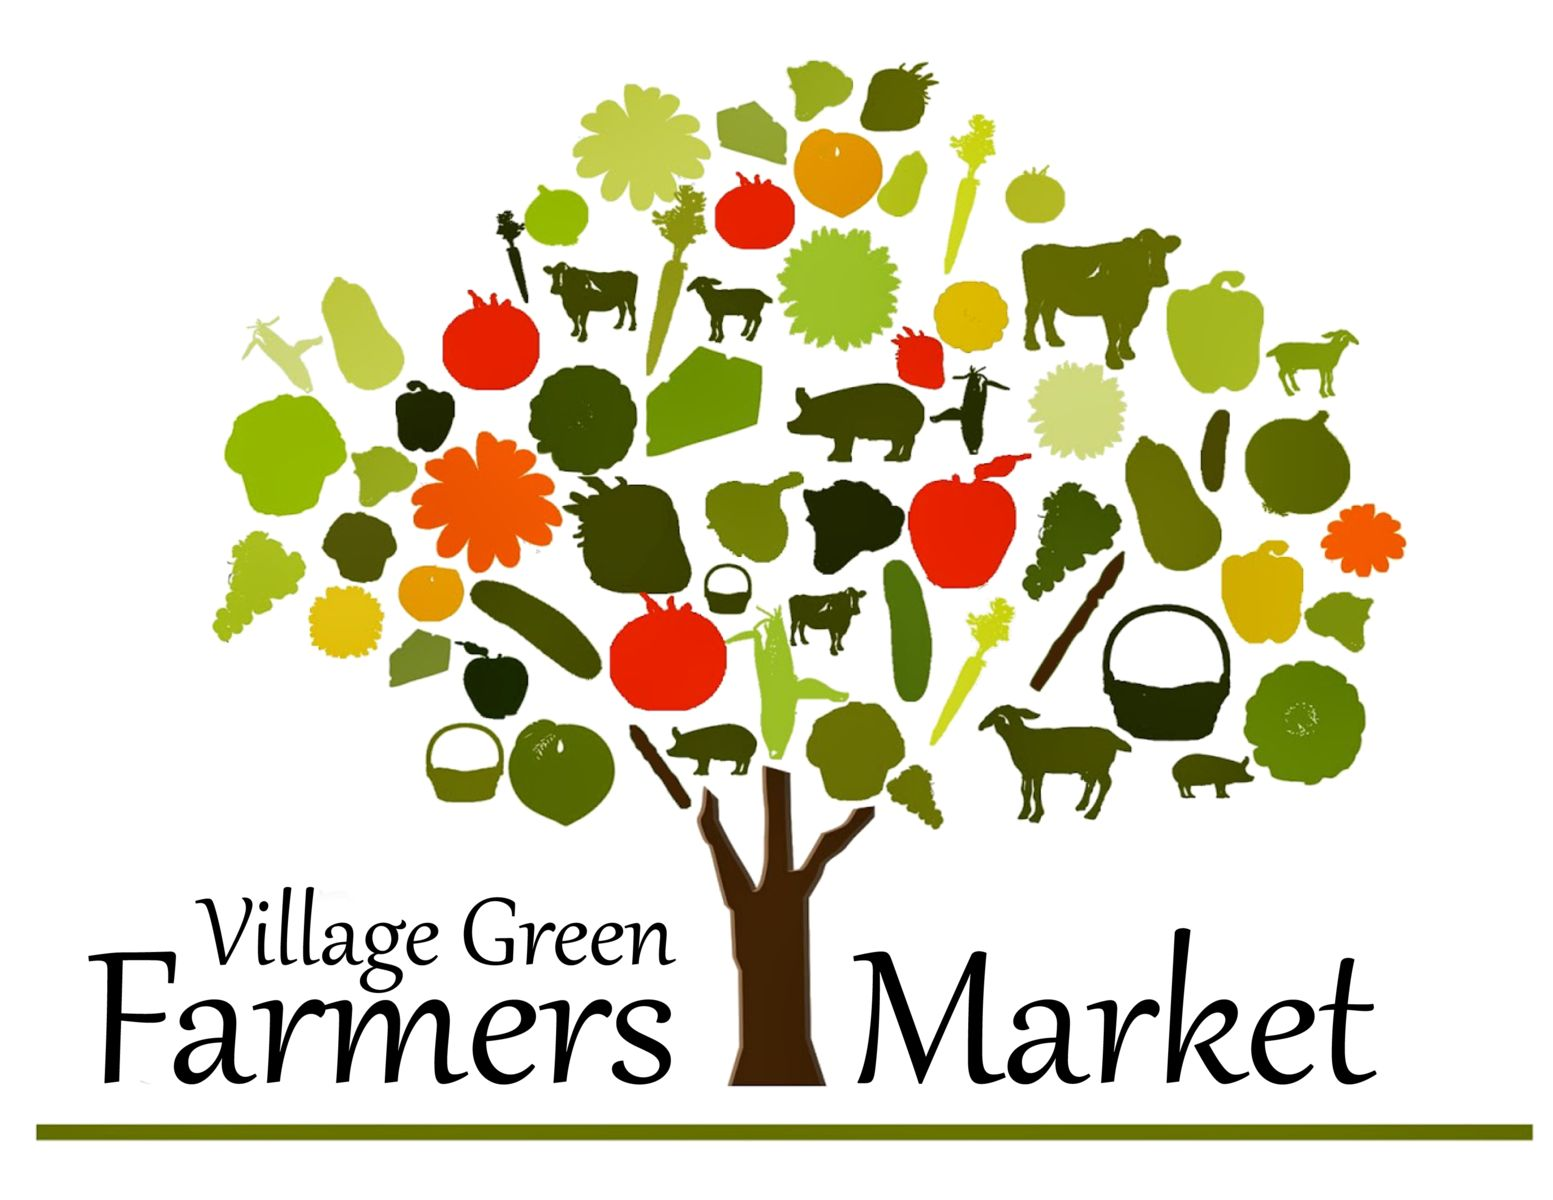 Village Green Farmer's Market